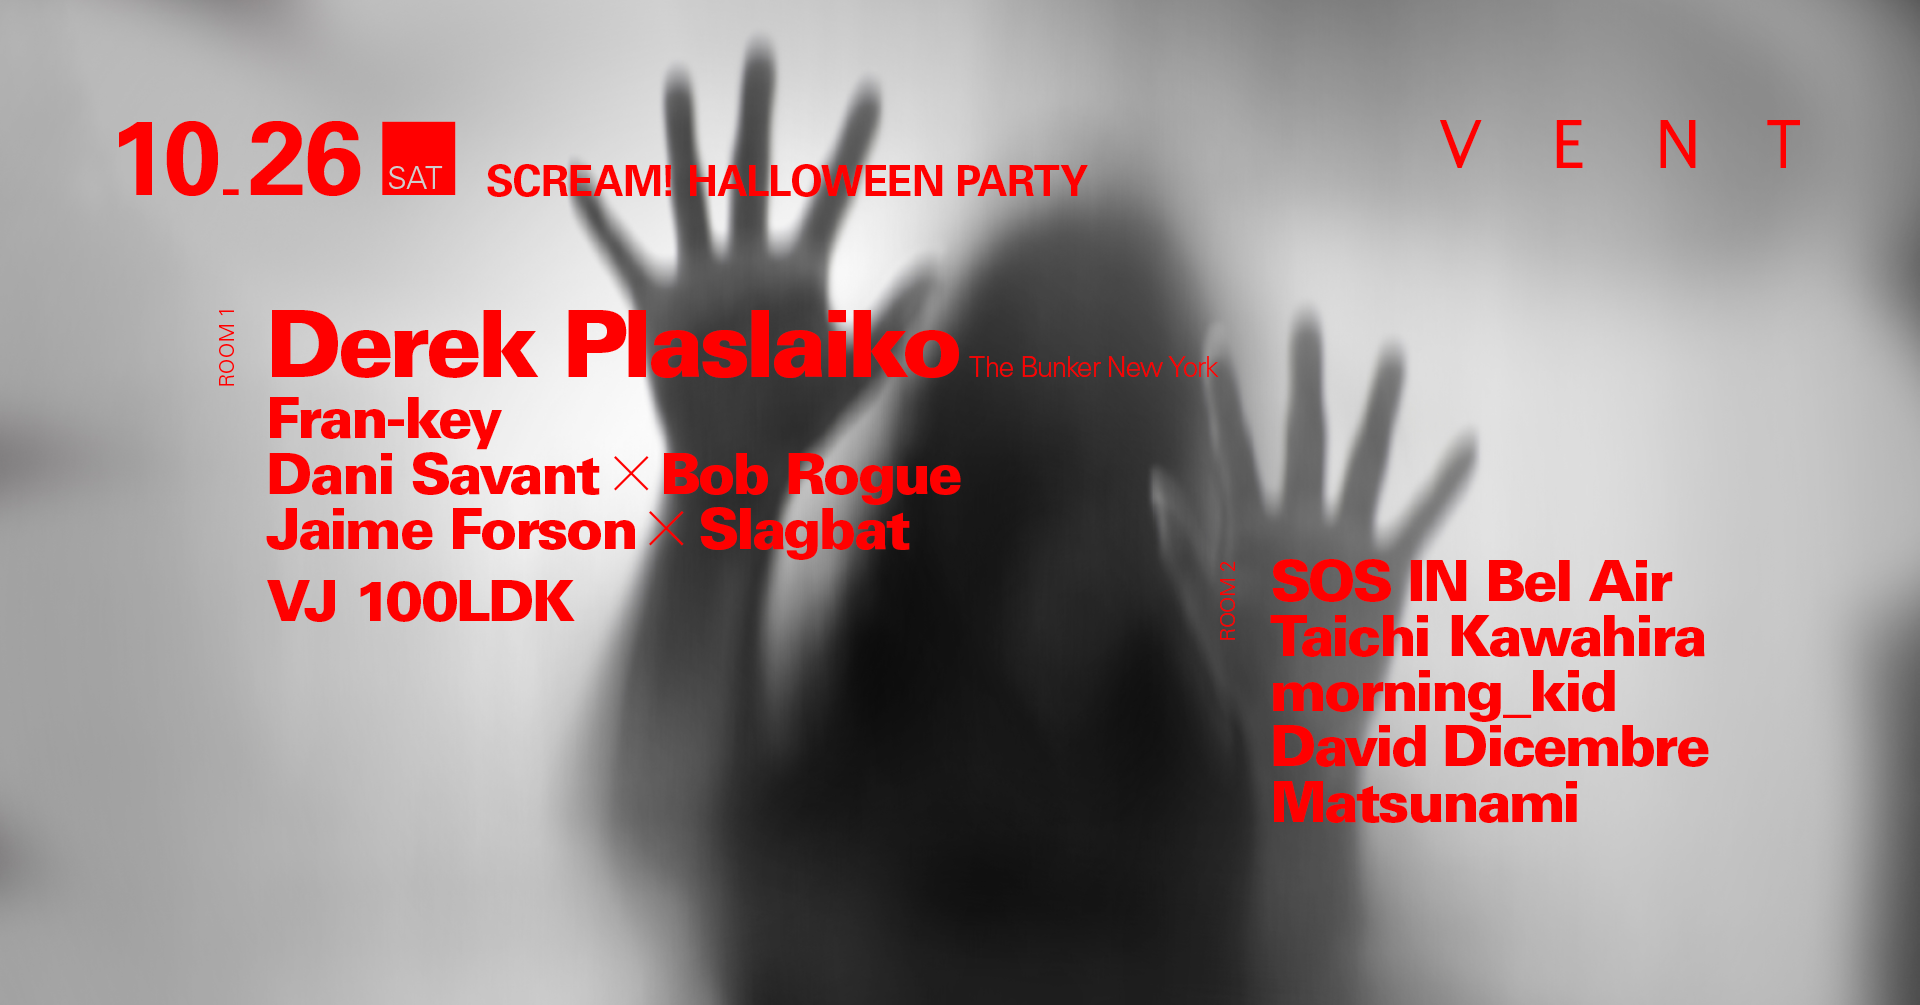 Derek Plaslaiko at SCREAM! HALLOWEEN PARTY